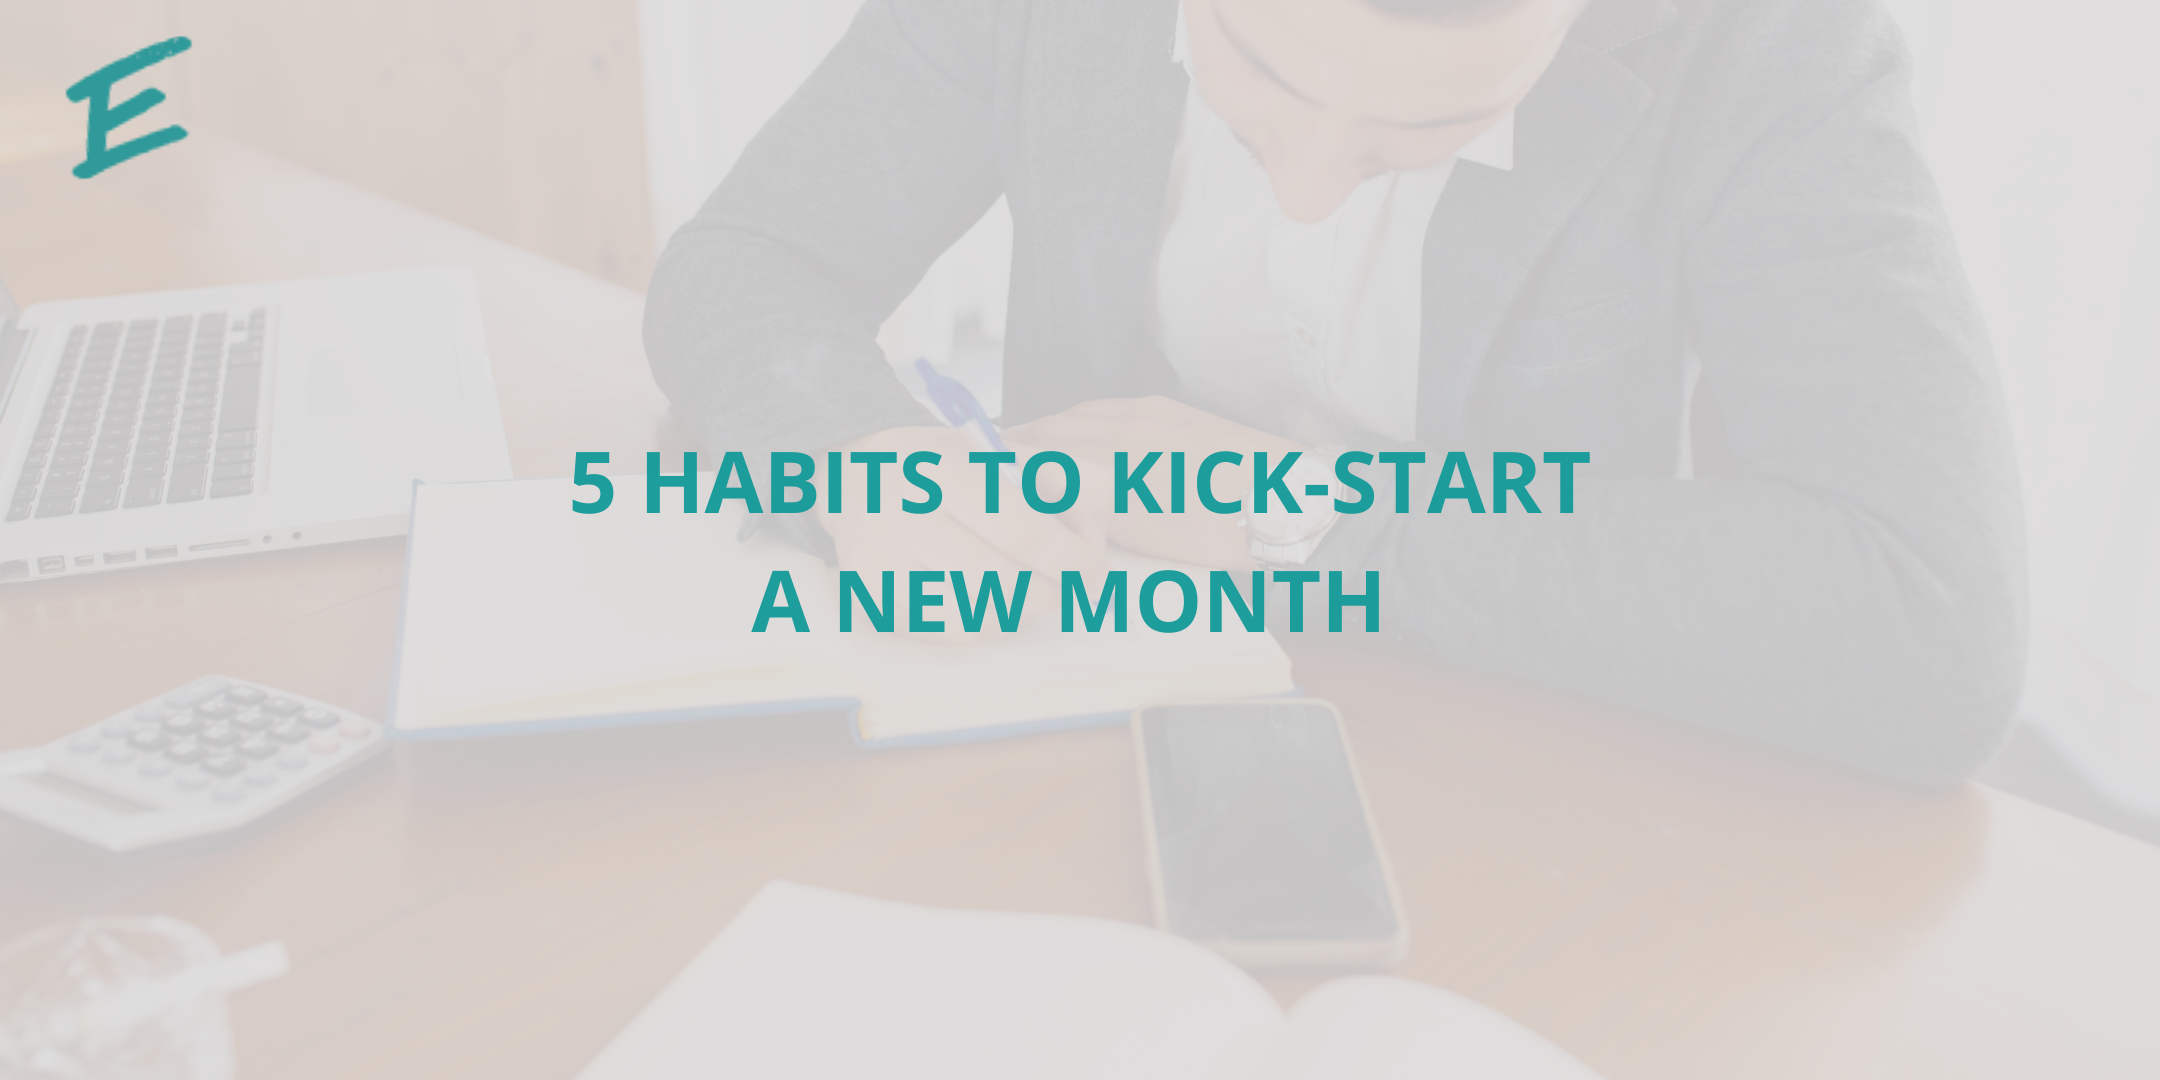 5-habits-to-kick-start-a-new-month